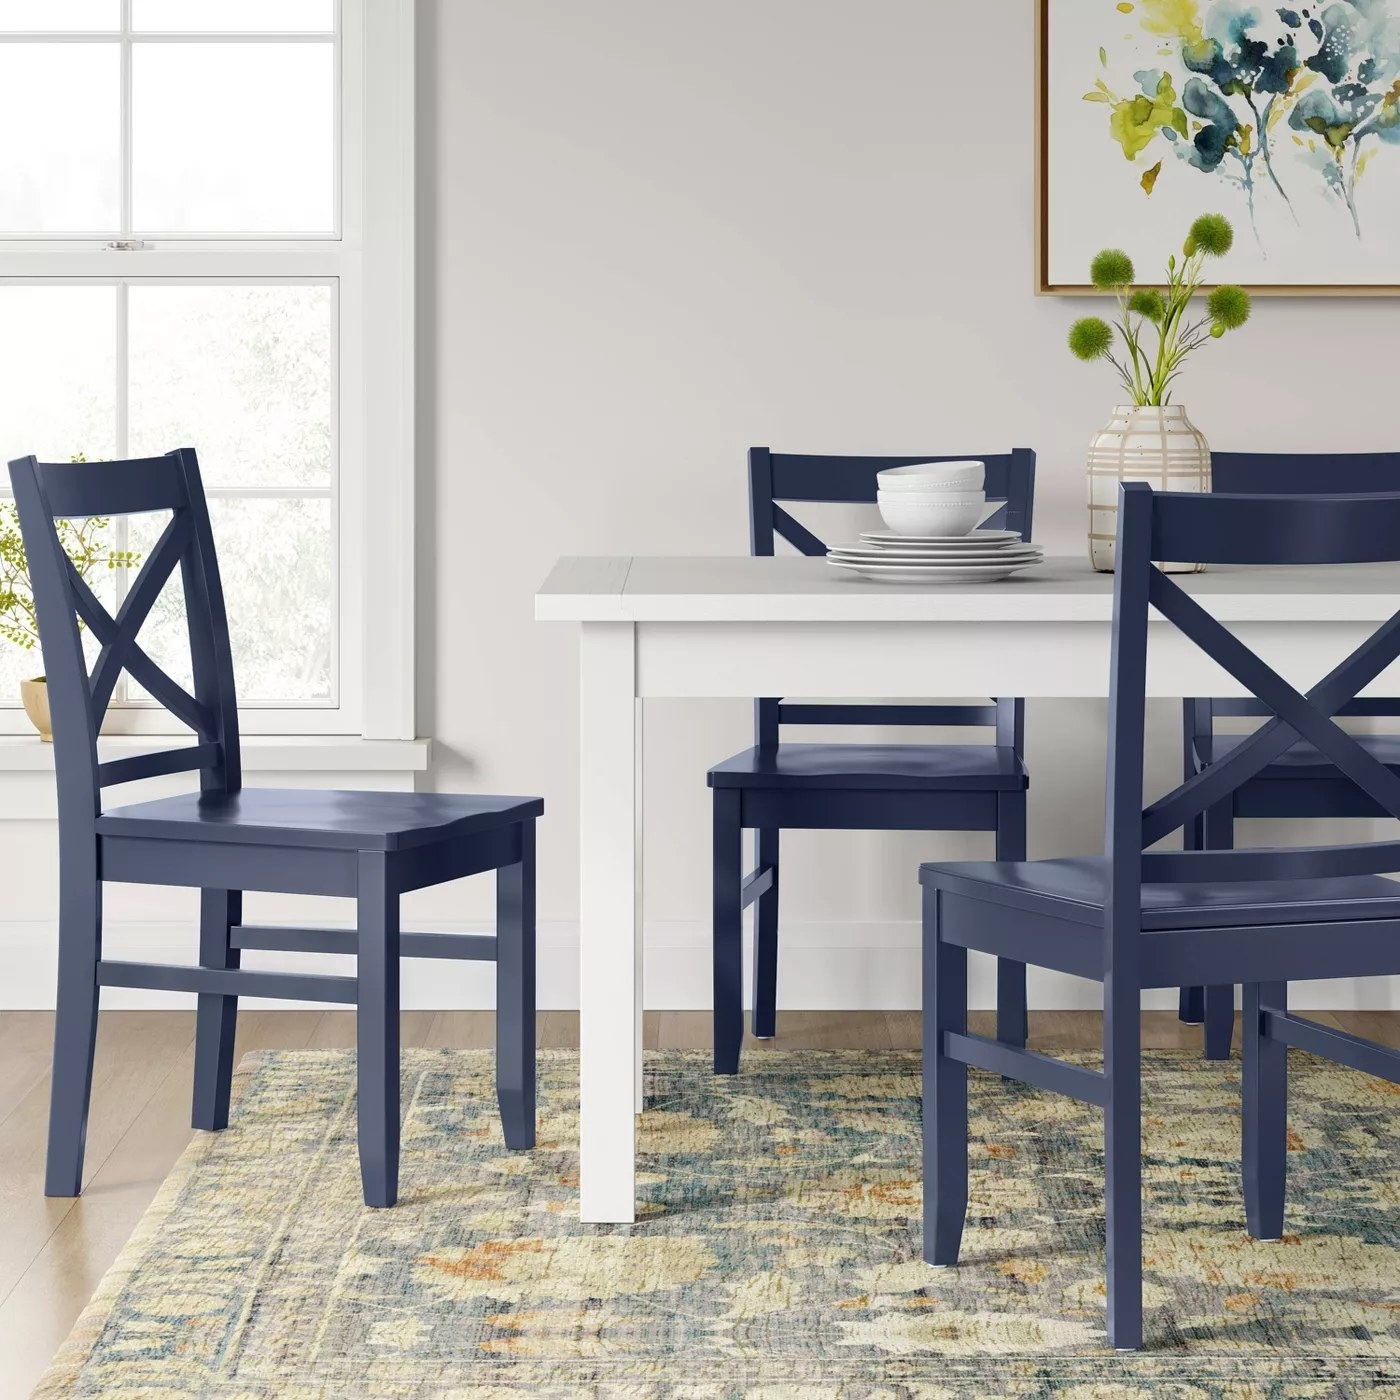 The blue dining chairs